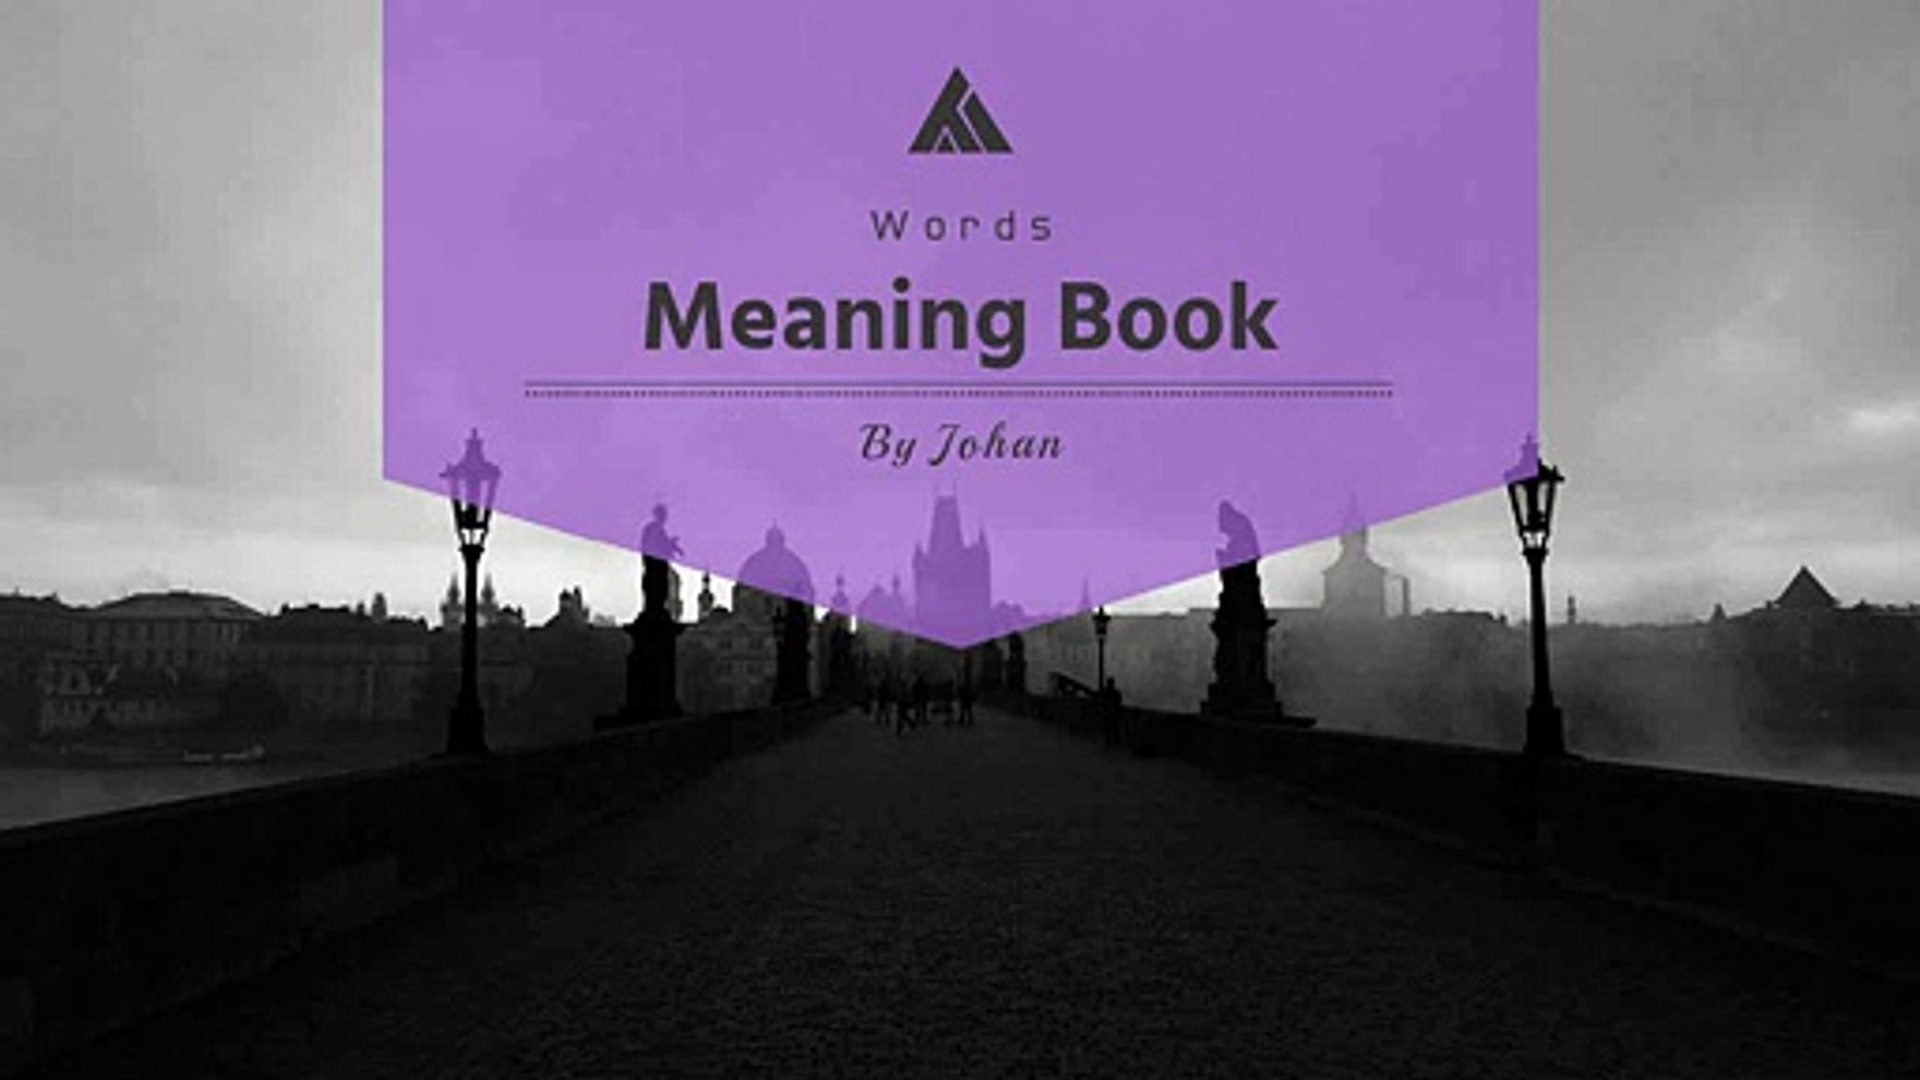 Parodically Meaning